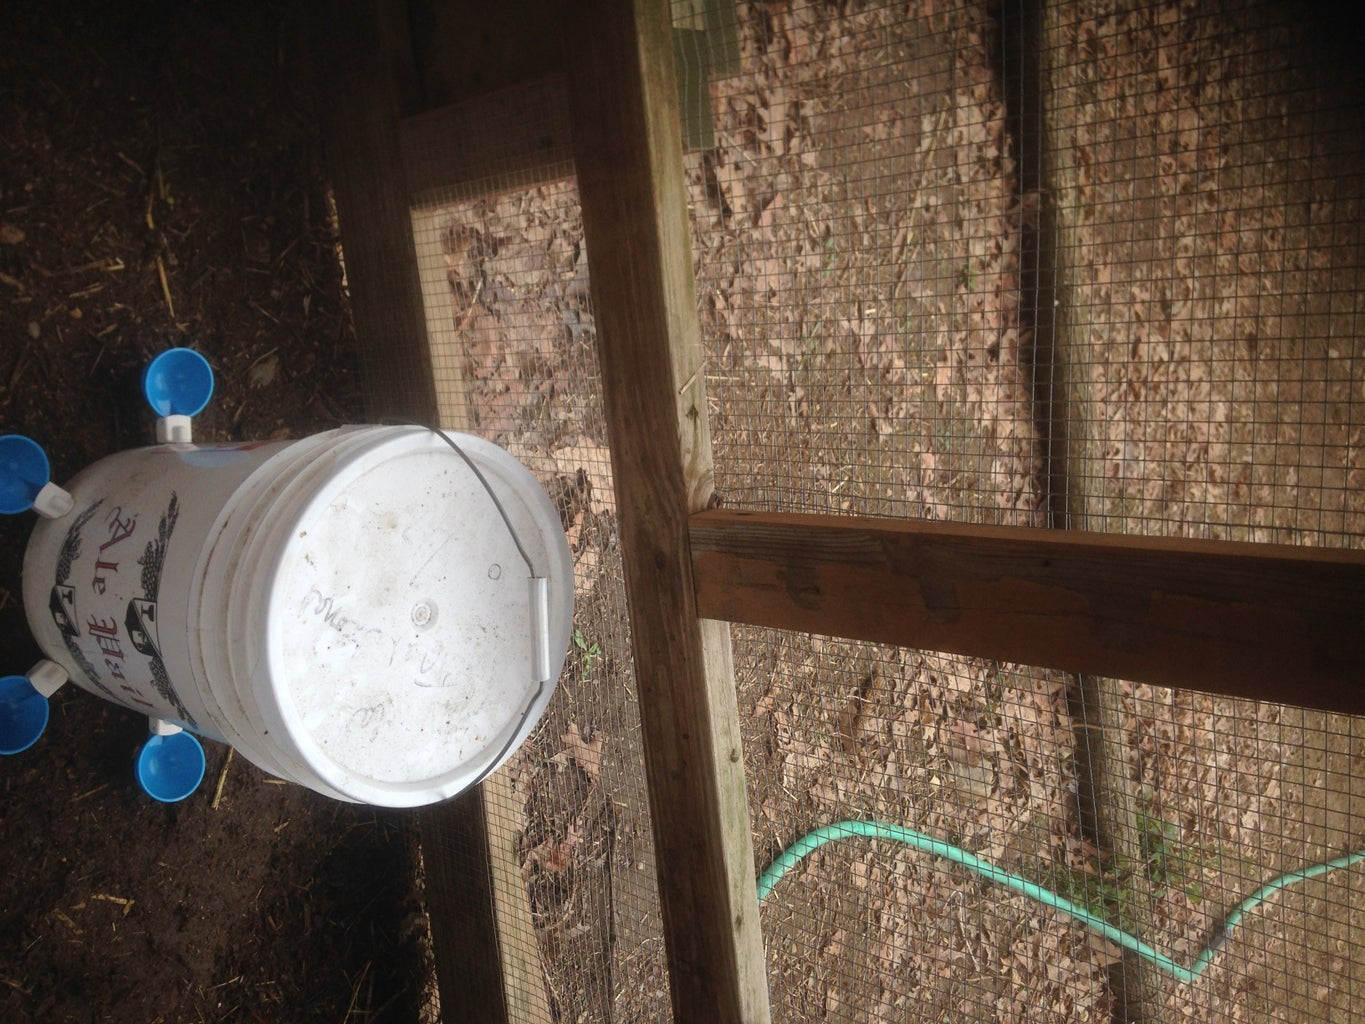 Super Simple Chicken Waterer - Step #2 - Install the Hook